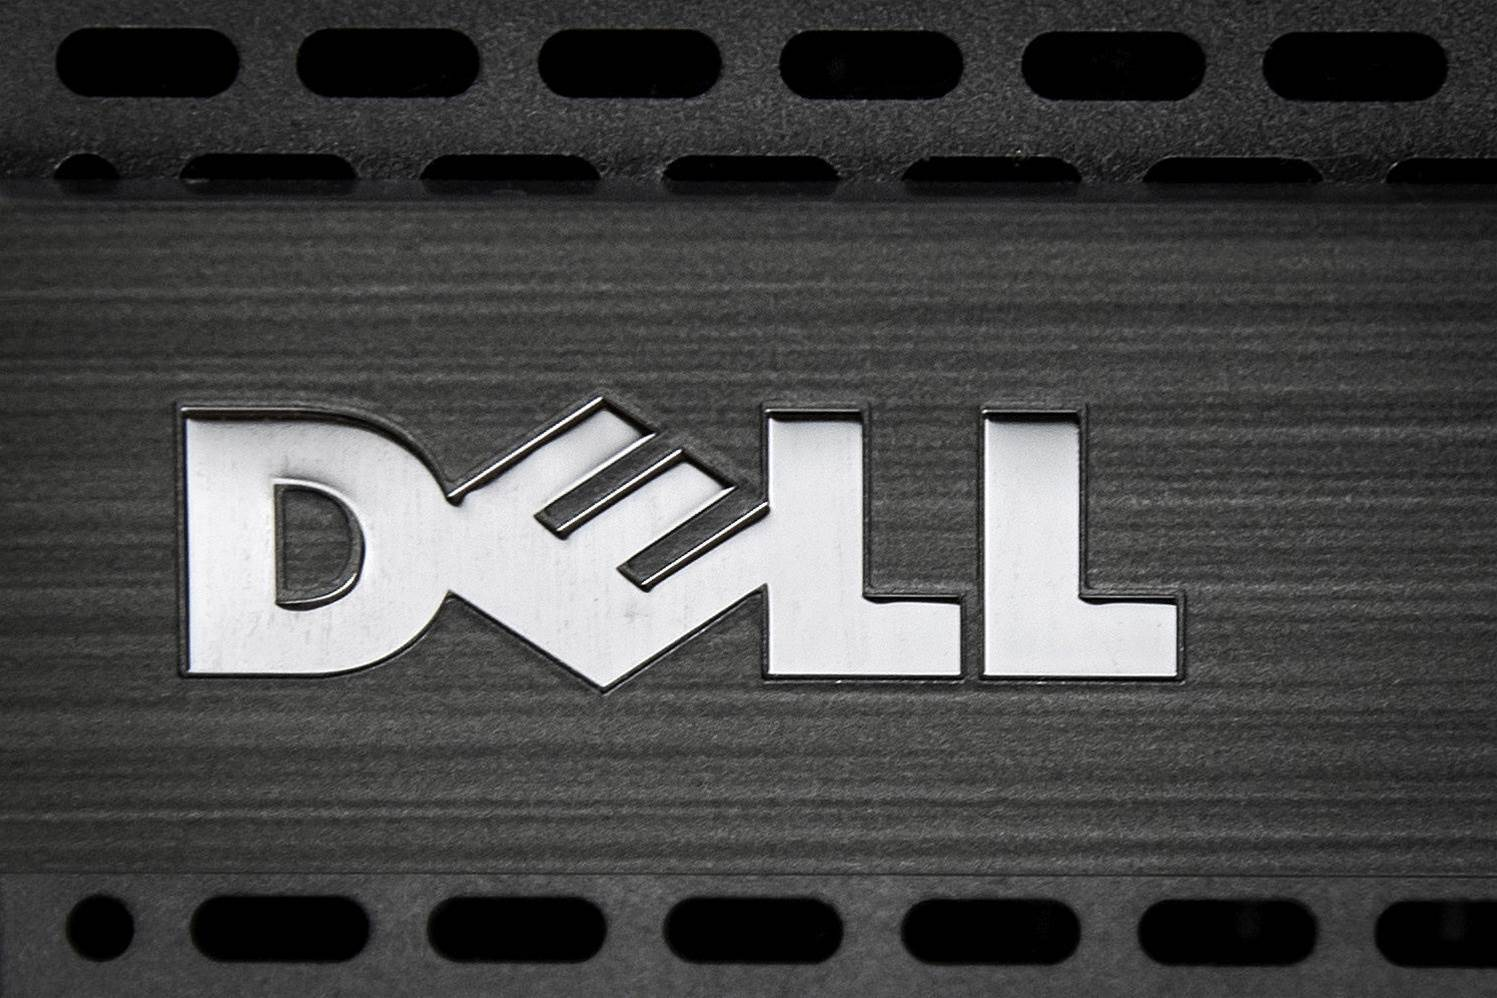 Dell resets all customer passwords after cyber attack